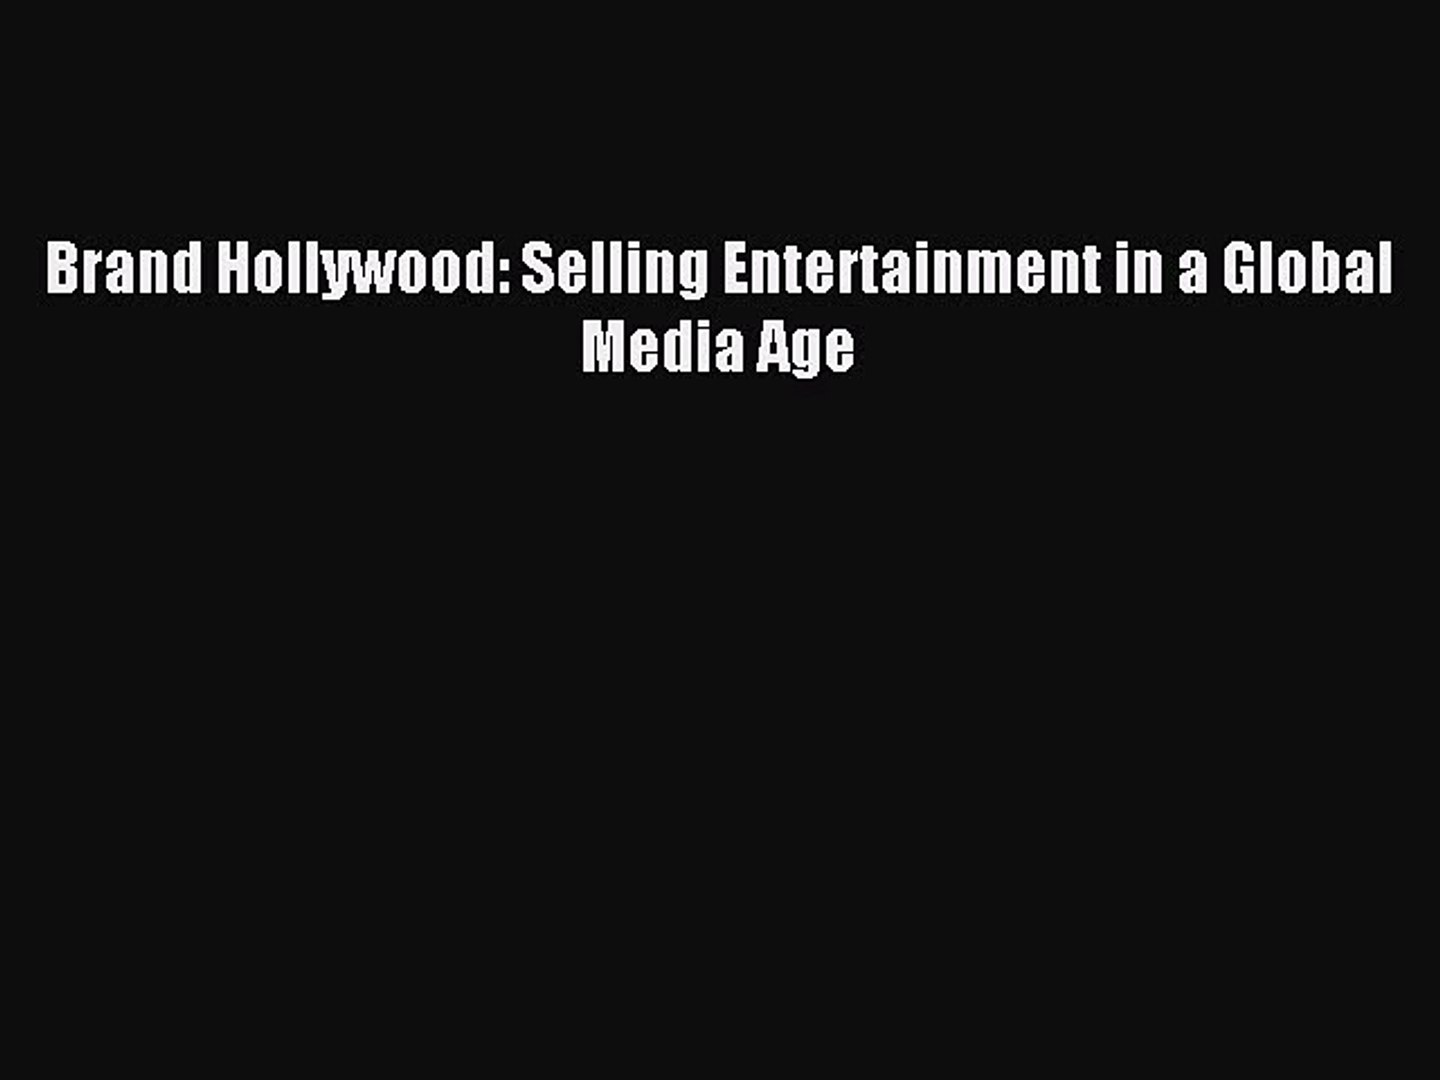 Brand Hollywood: Selling Entertainment in a Global Media Age